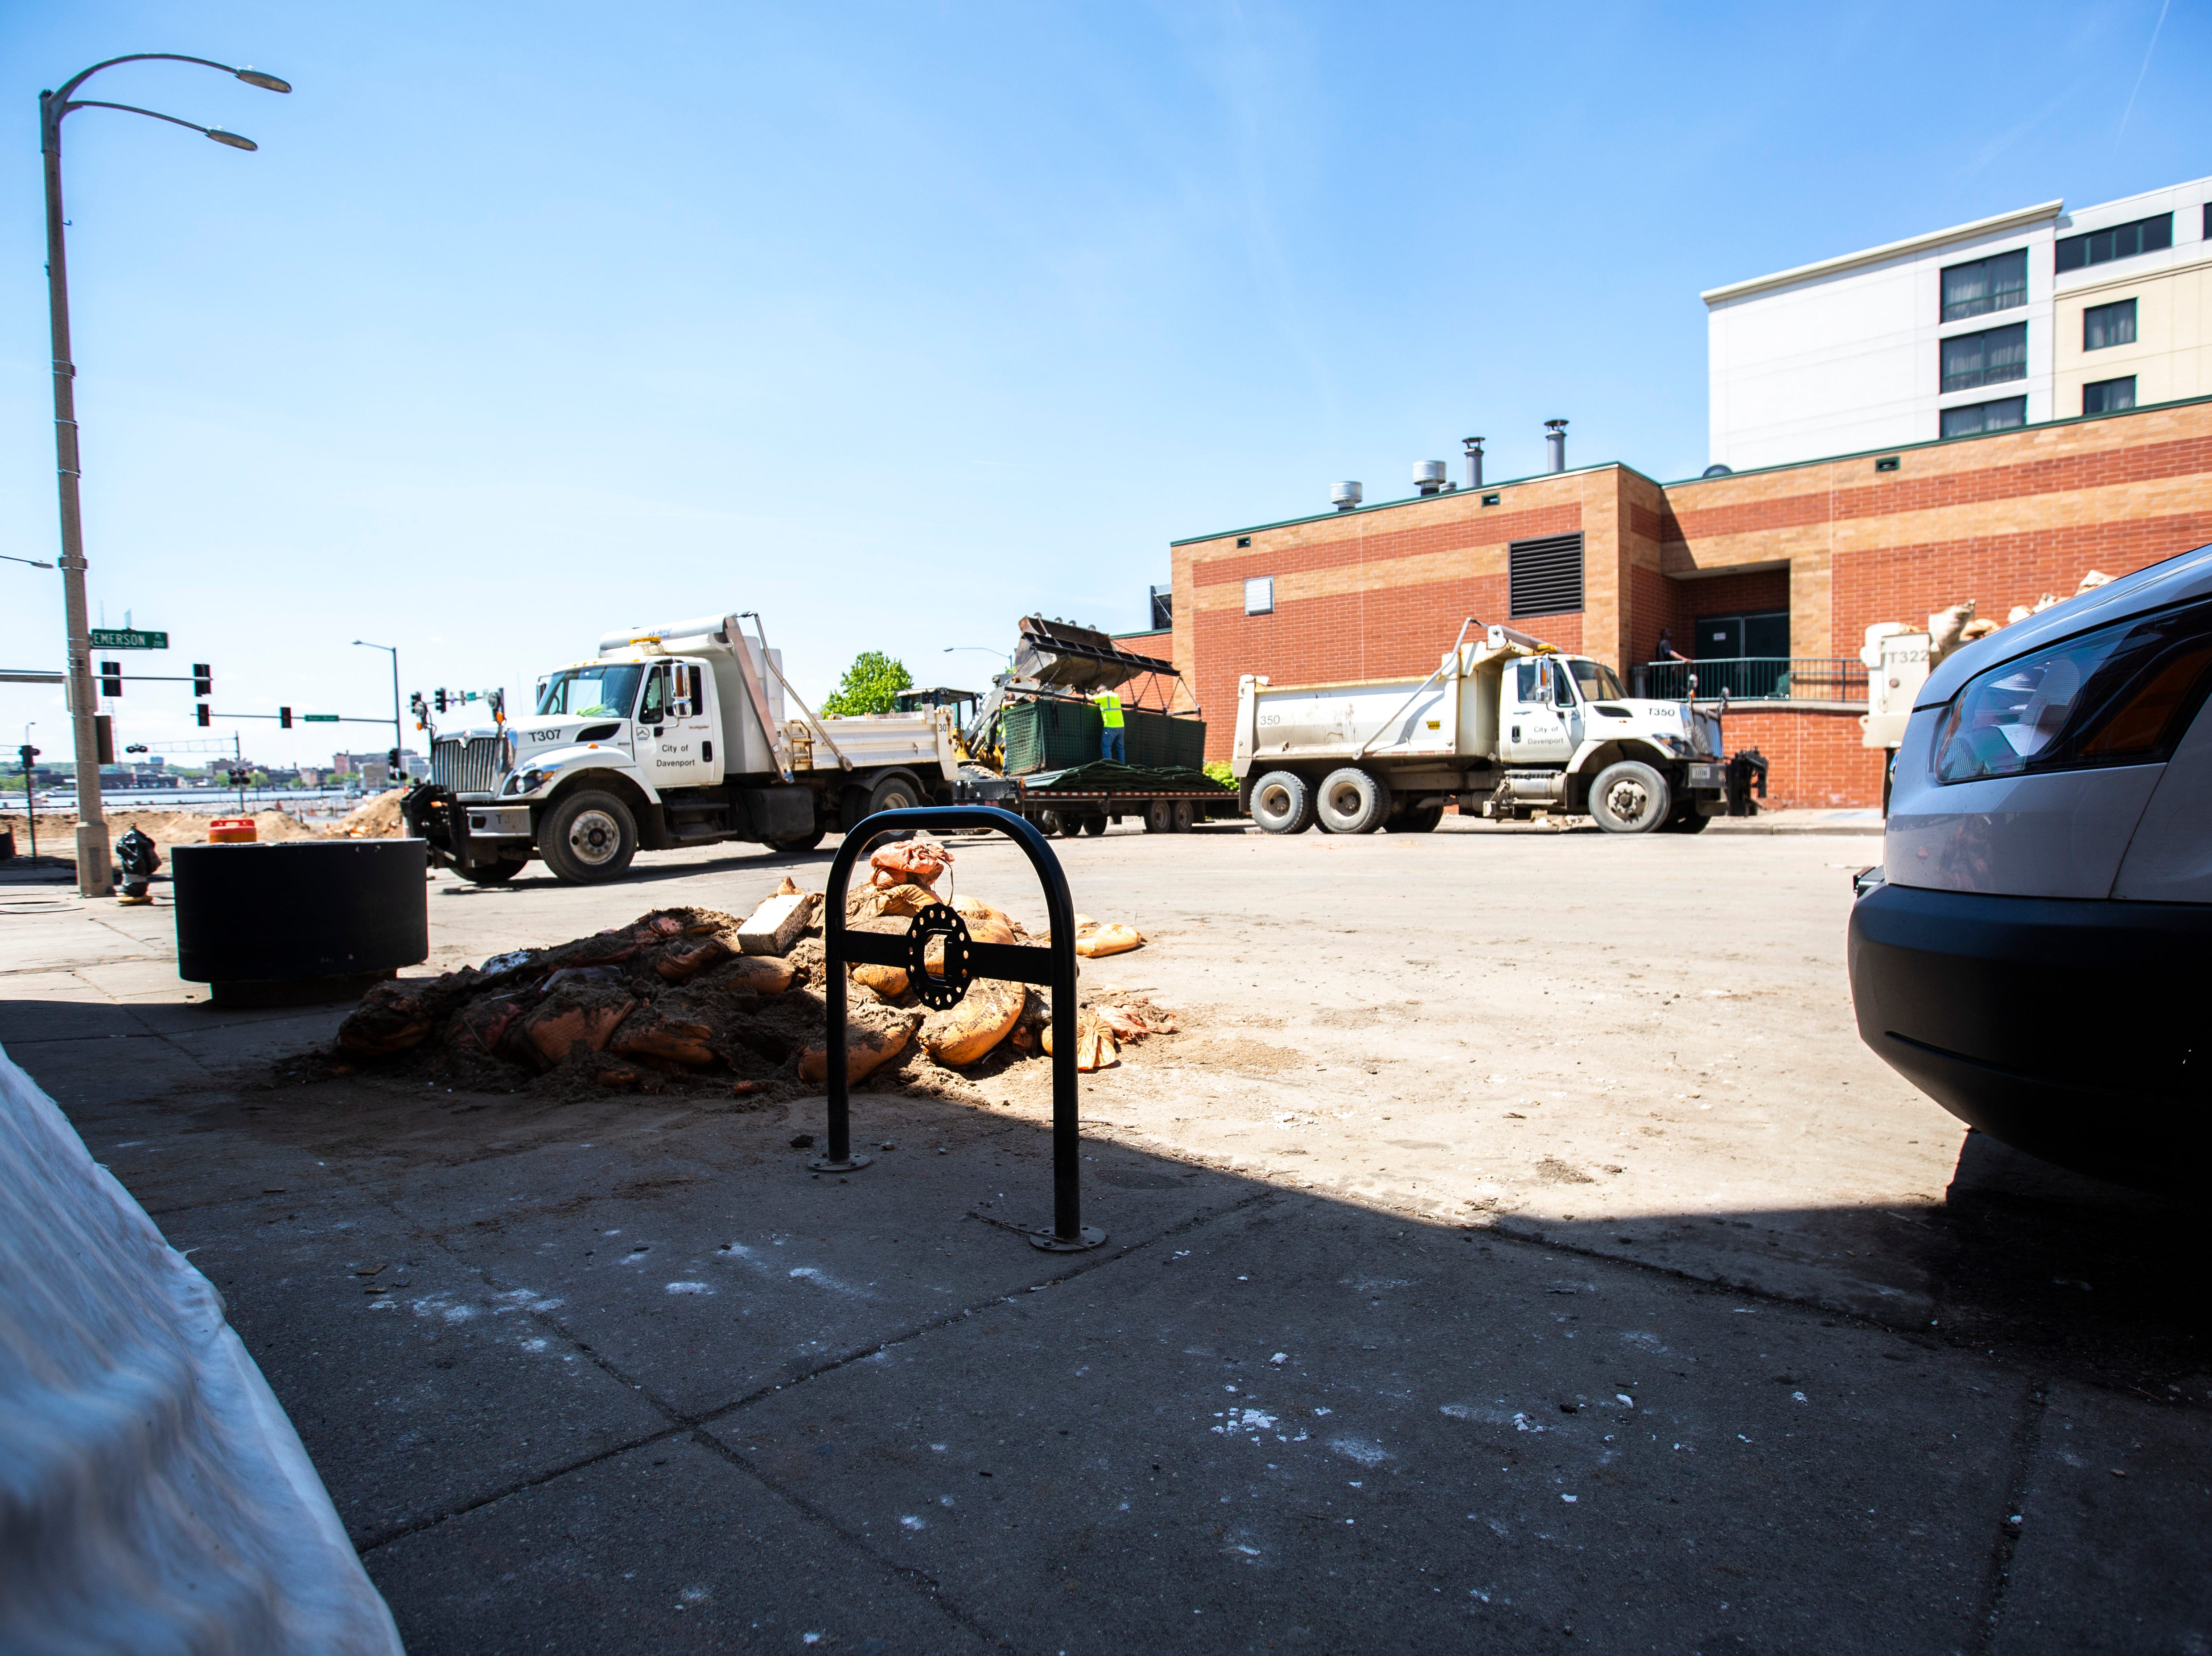 City of Davenport crews work as cleanup begins after floodwaters receded, Wednesday, May 15, 2019, along Perry Street in downtown Davenport, Iowa.